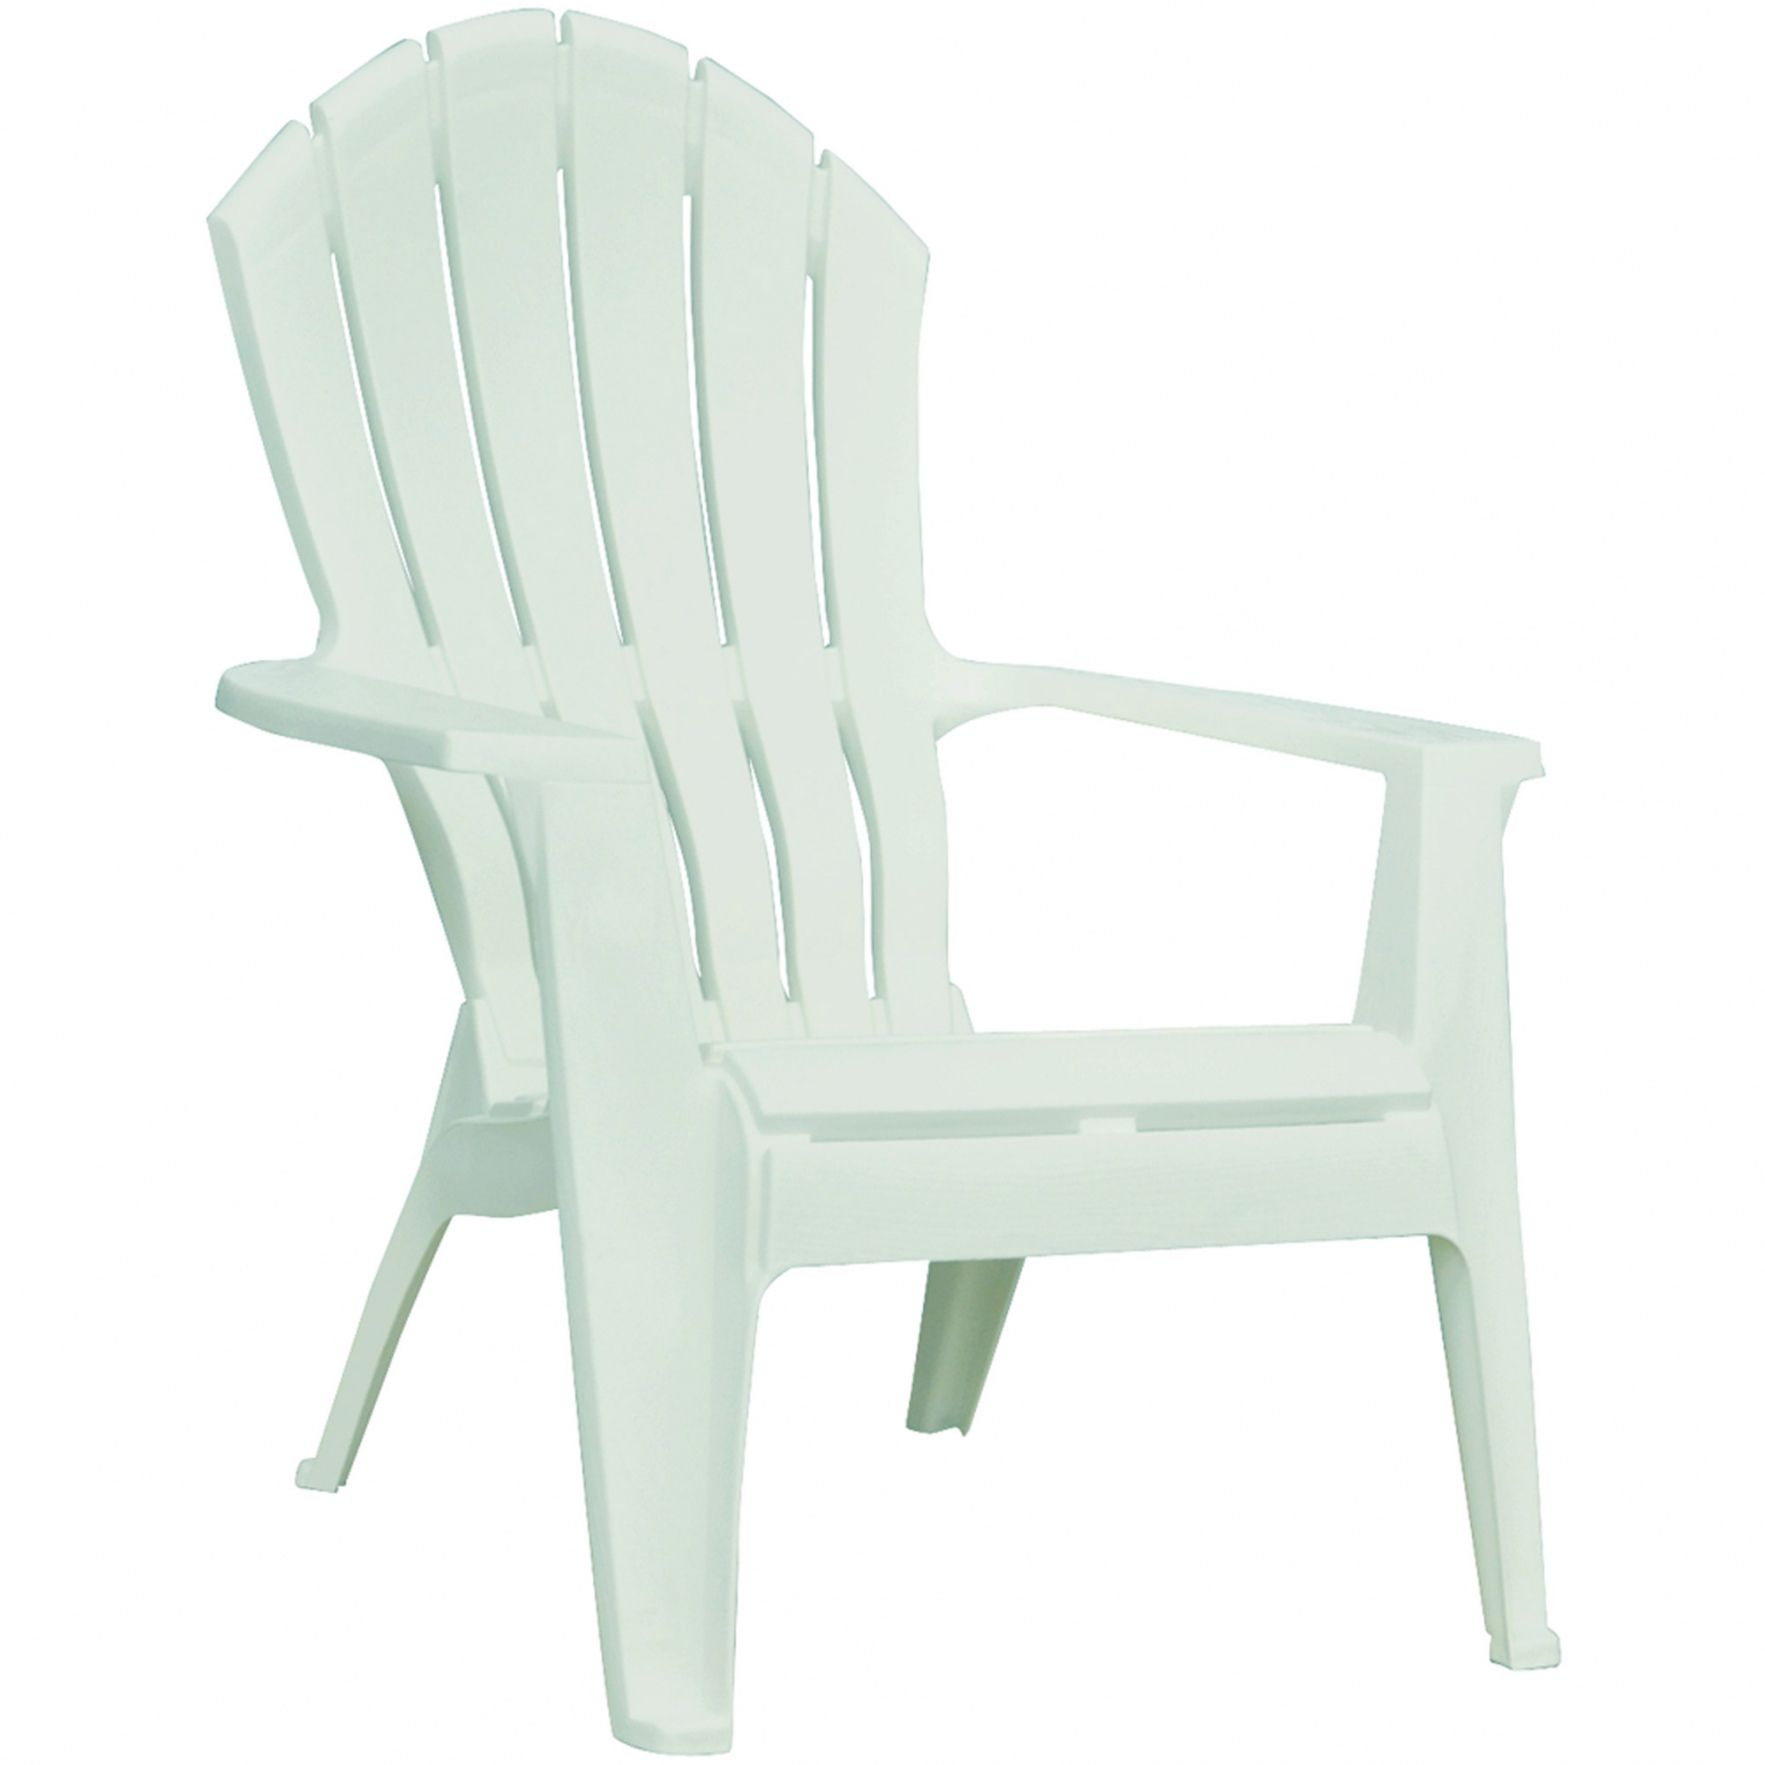 Adirondack Chairs Walmart Summit Trophy Chair Review Pin By Erlangfahresi On Desk Office Design Patio Plastic 2018 Resin Best Way To Paint Furniture Check More At Http